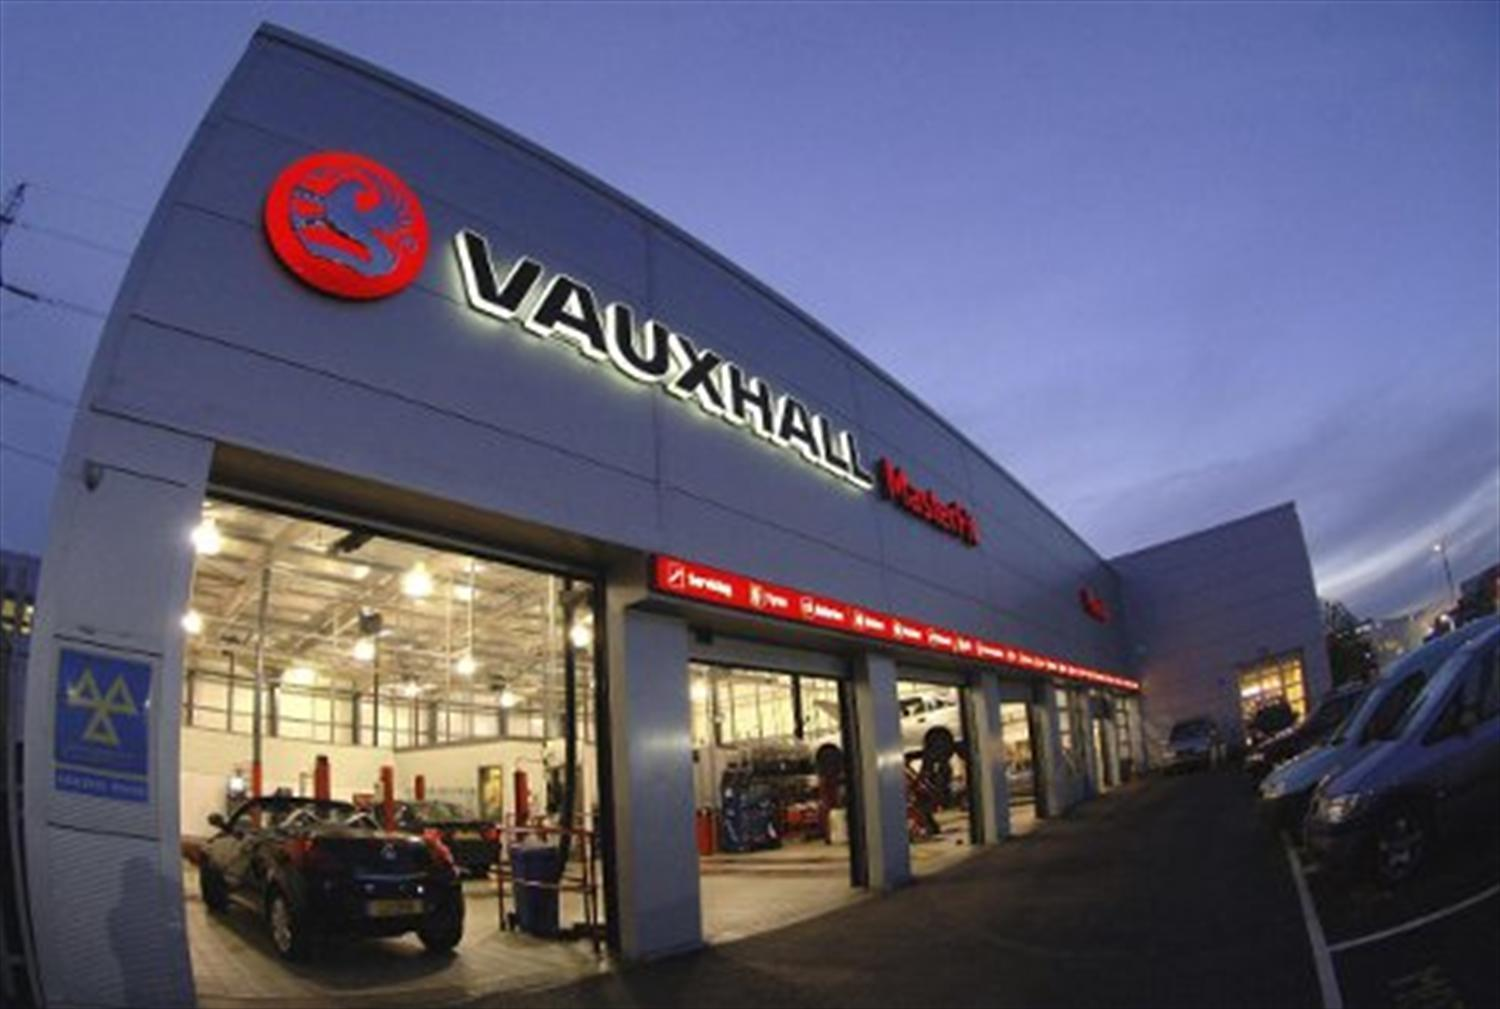 Free roadside assistance for Vauxhall